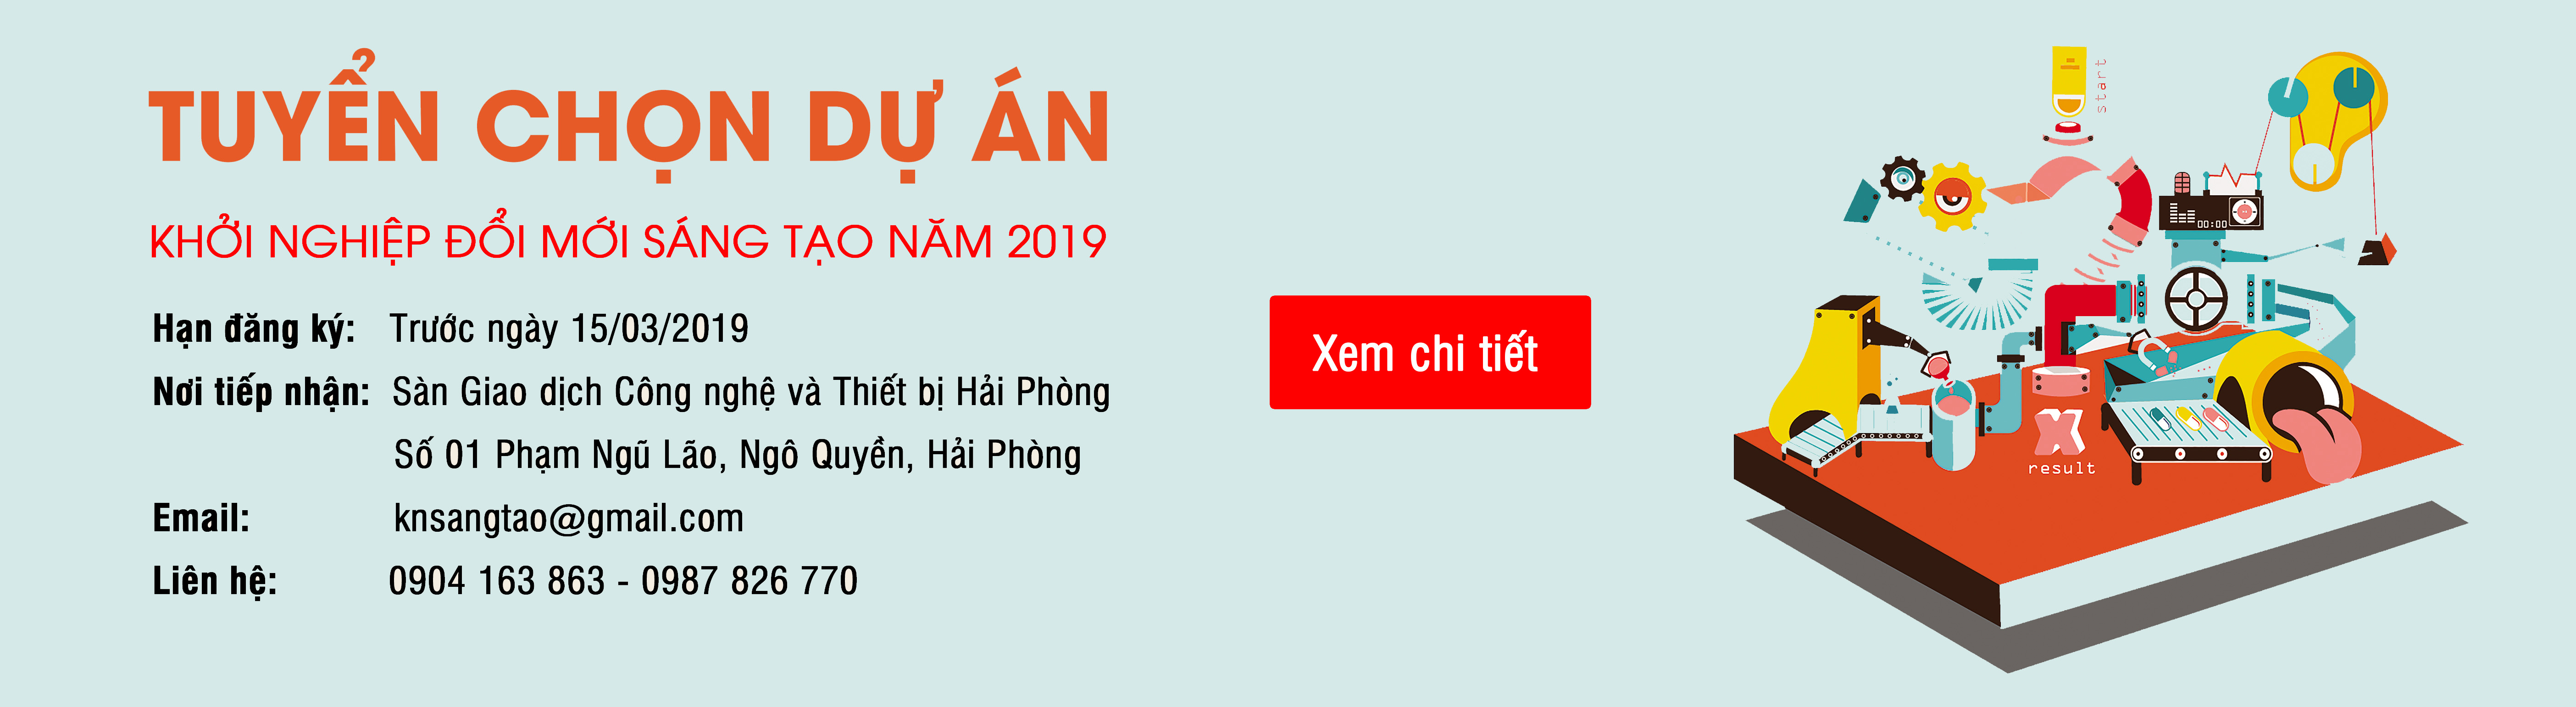 Banner khởi nghiệp